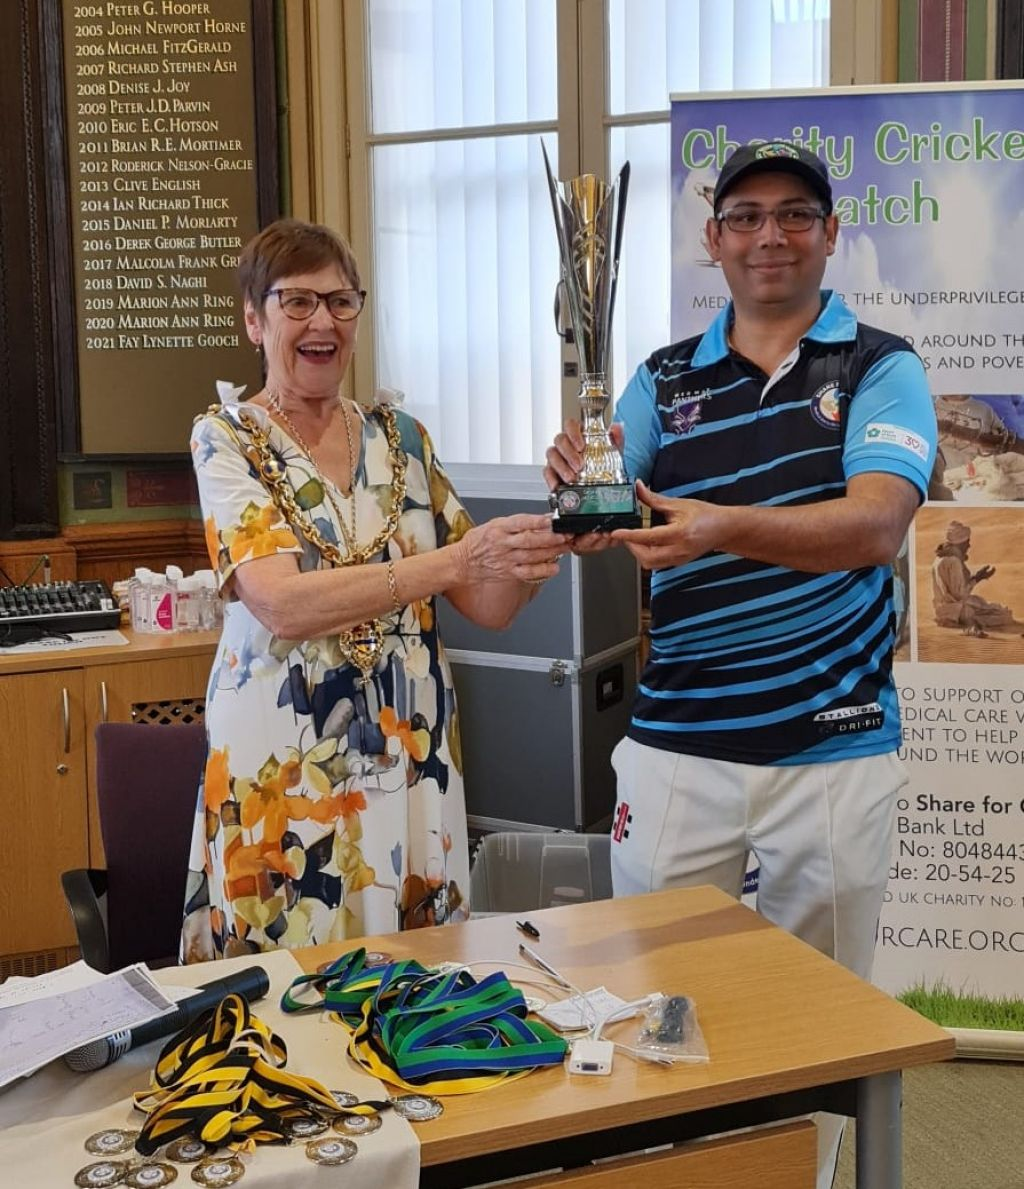 Mayor presents prizes to cricketers playing  for charity Share for Care image